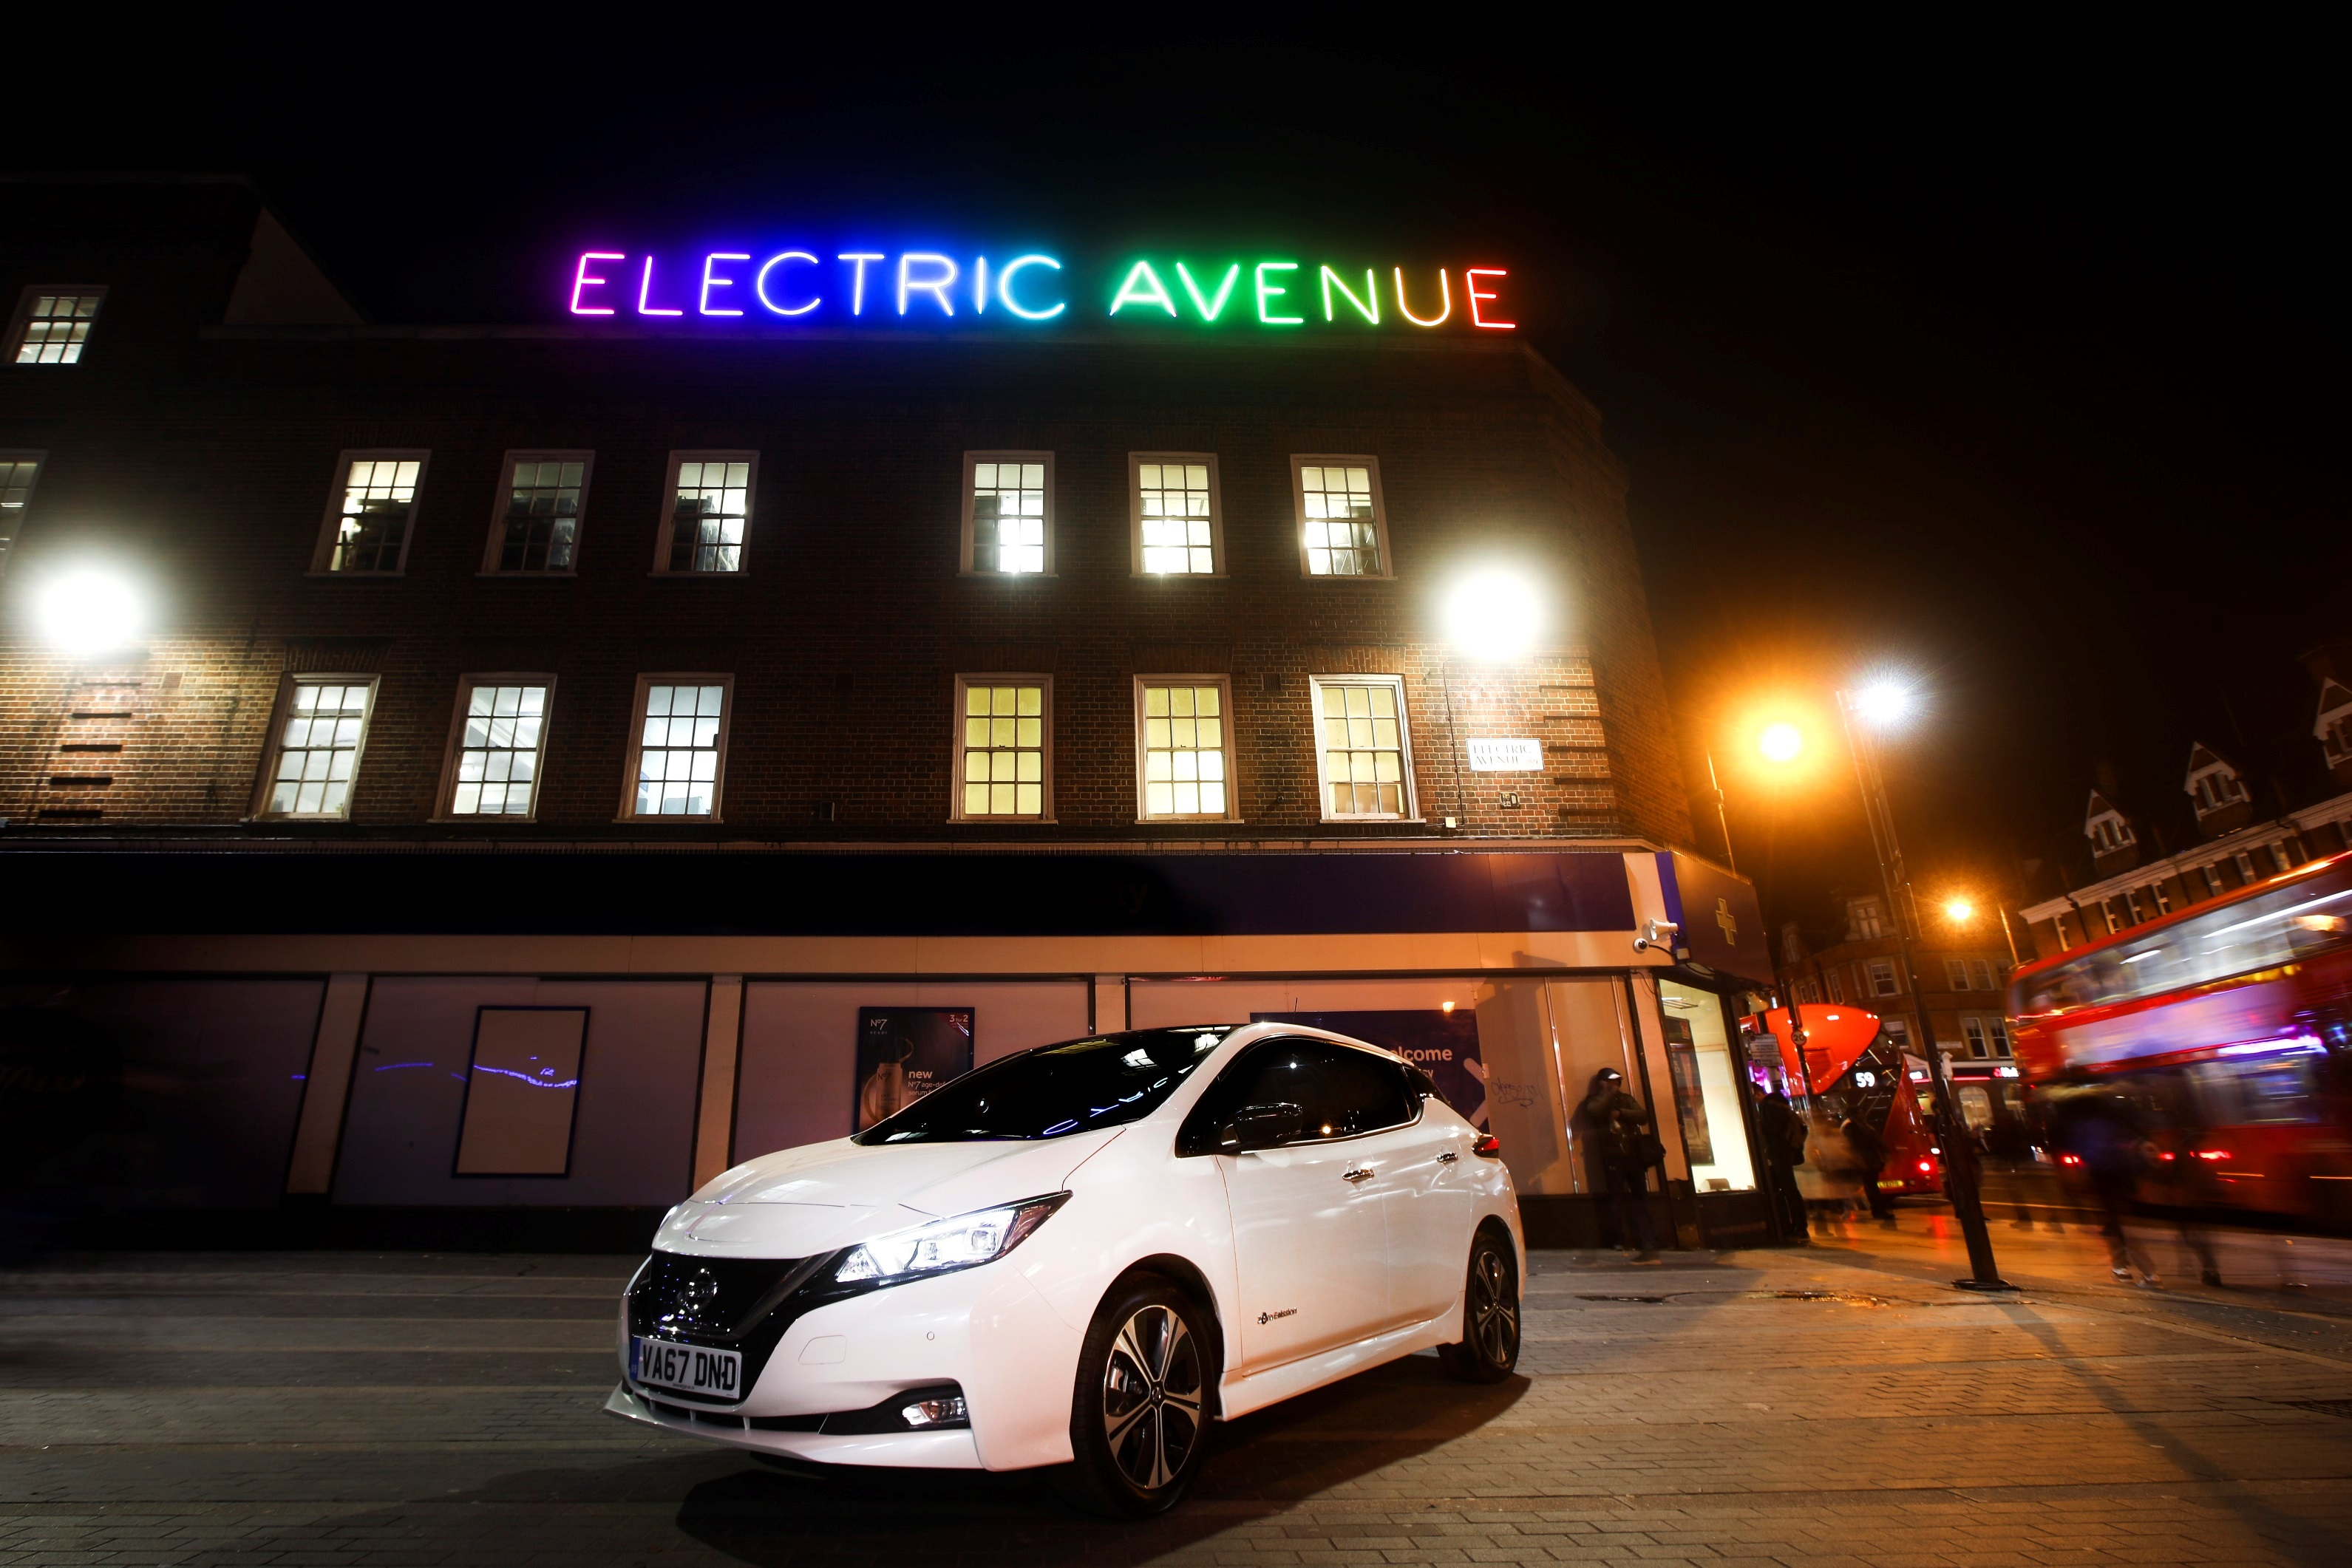 Buying electric cars